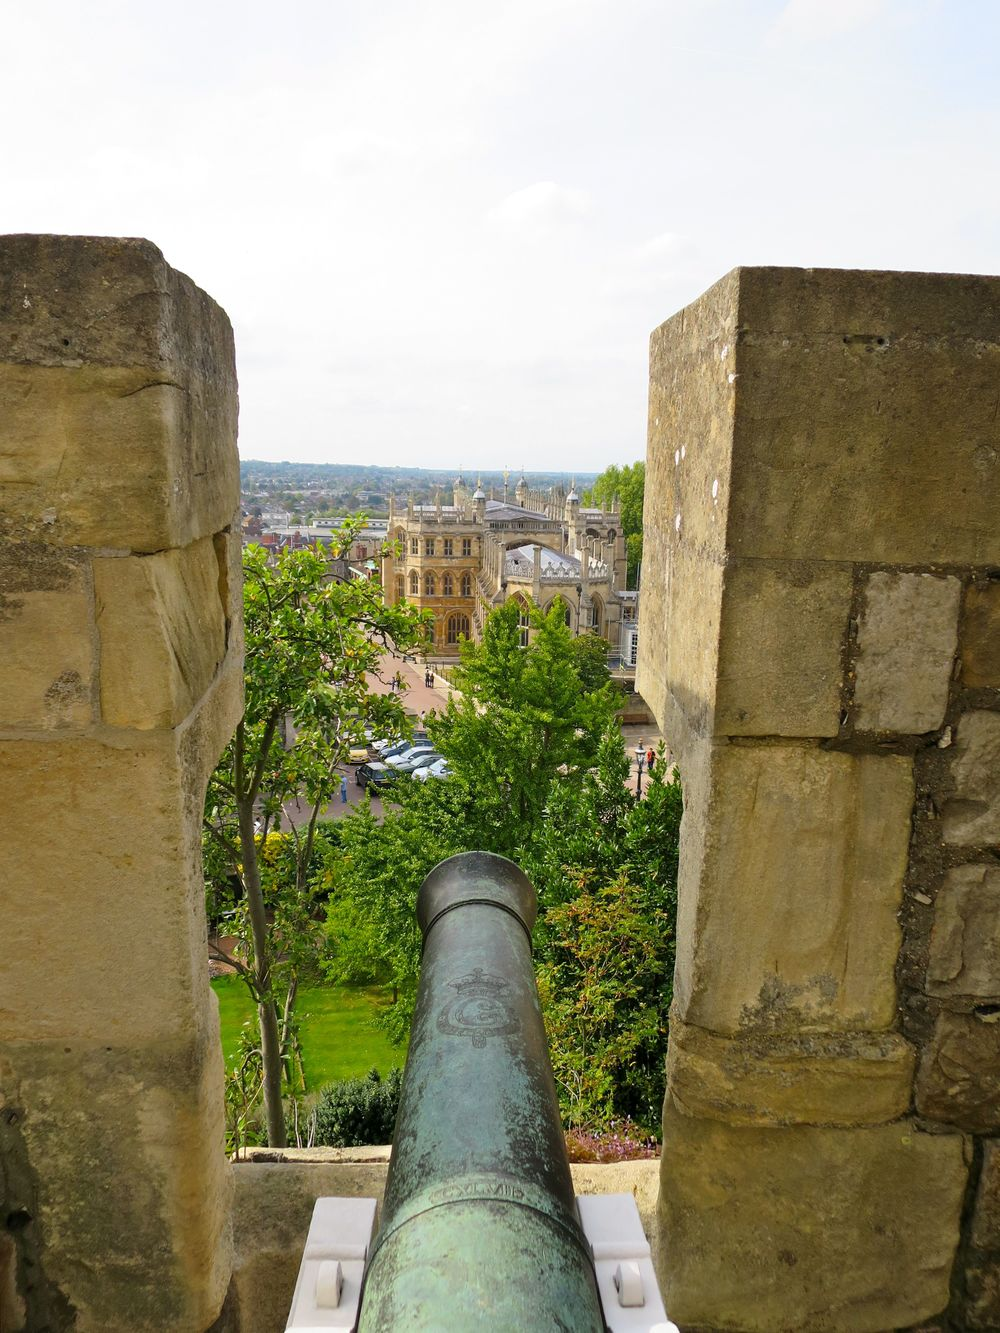 Conquering The Tower At Windsor Castle